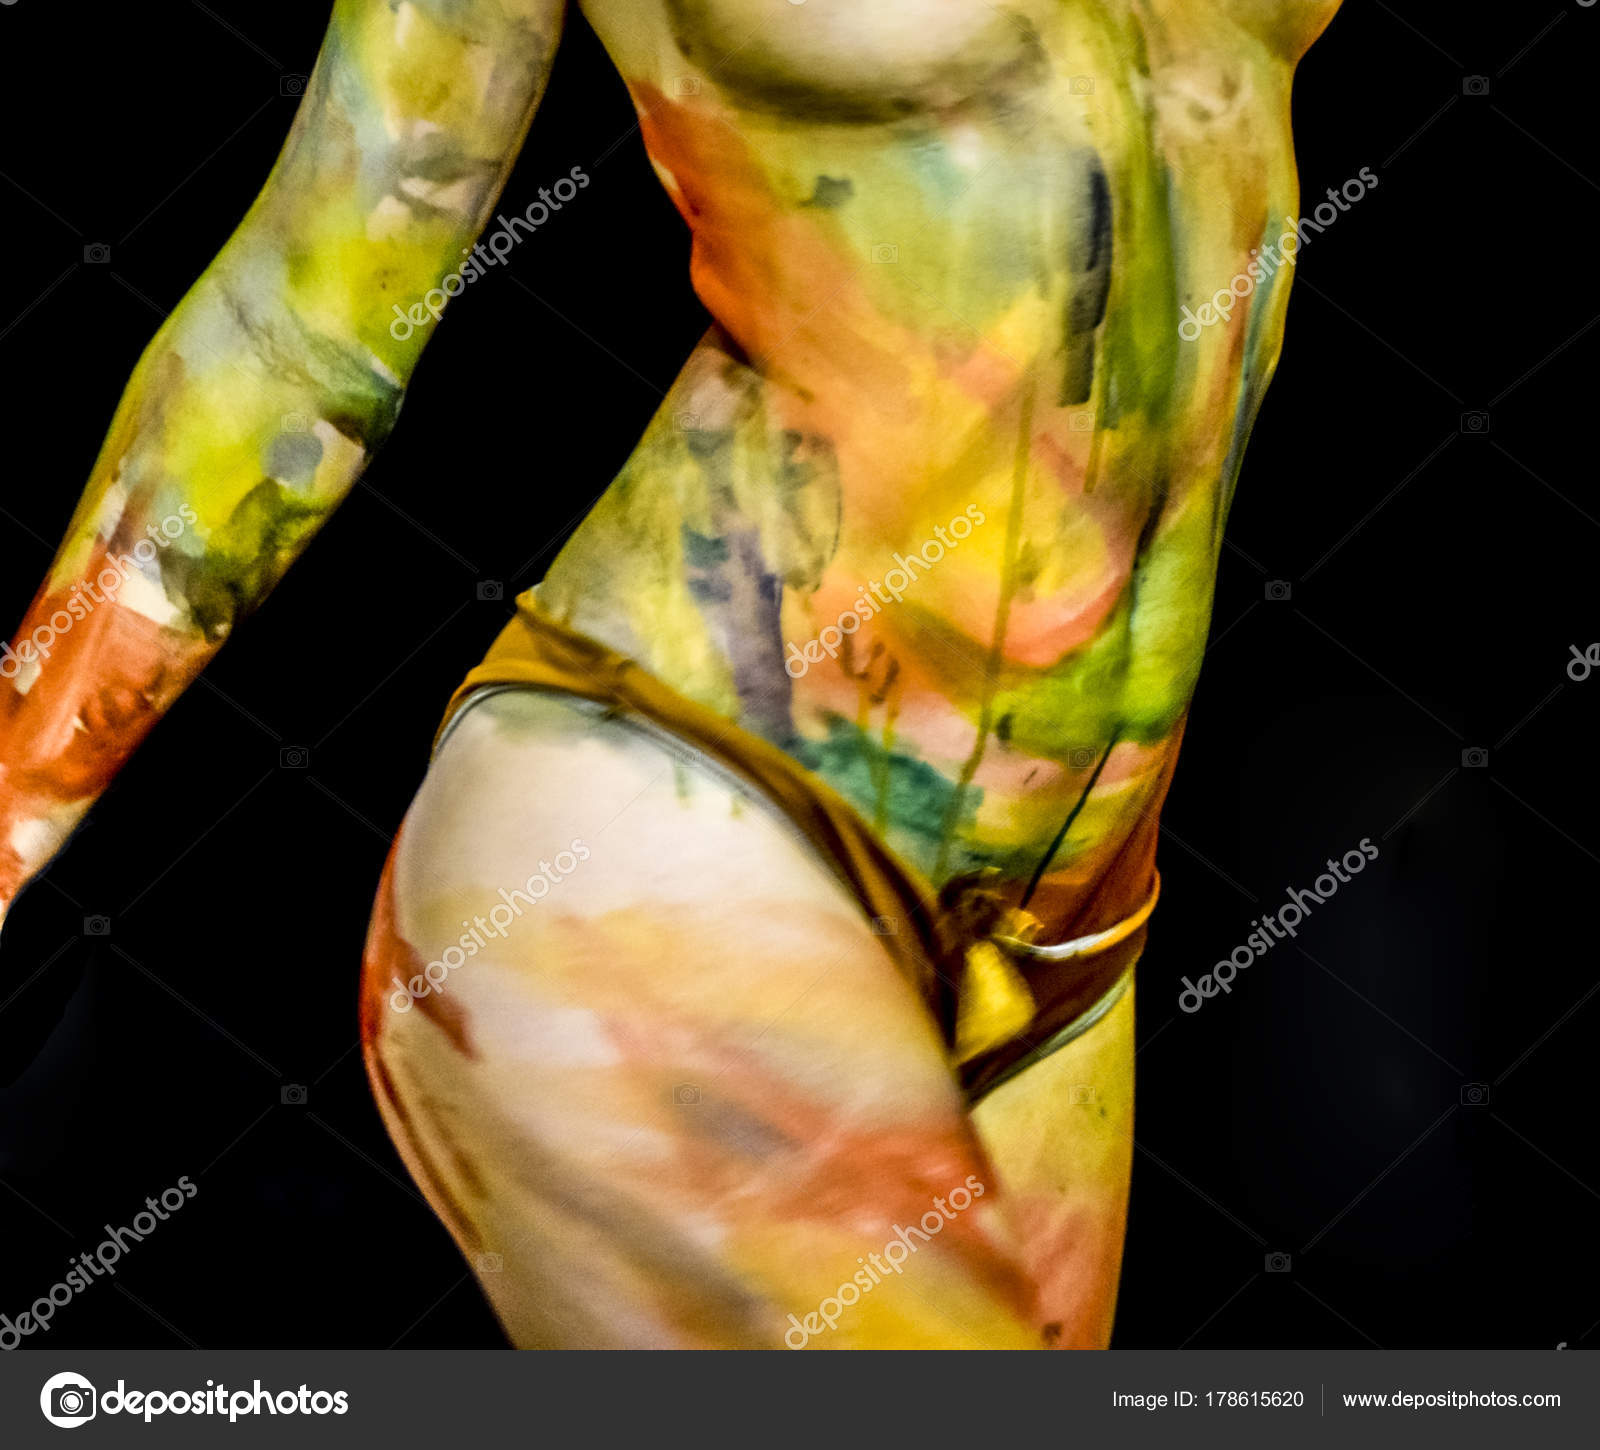 Painted Body Art Pics